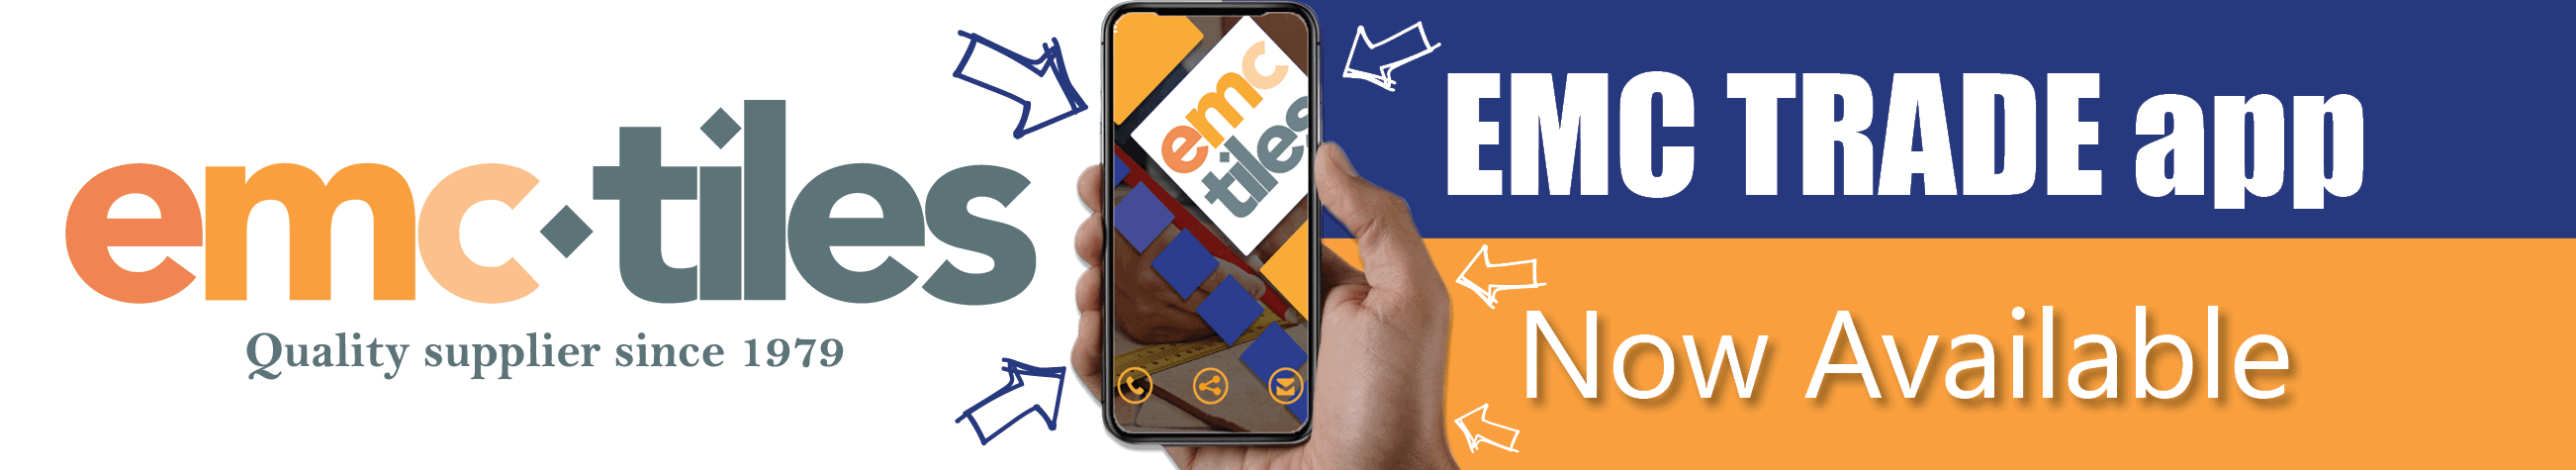 emc trade app now available to download apple and android tilers tiling